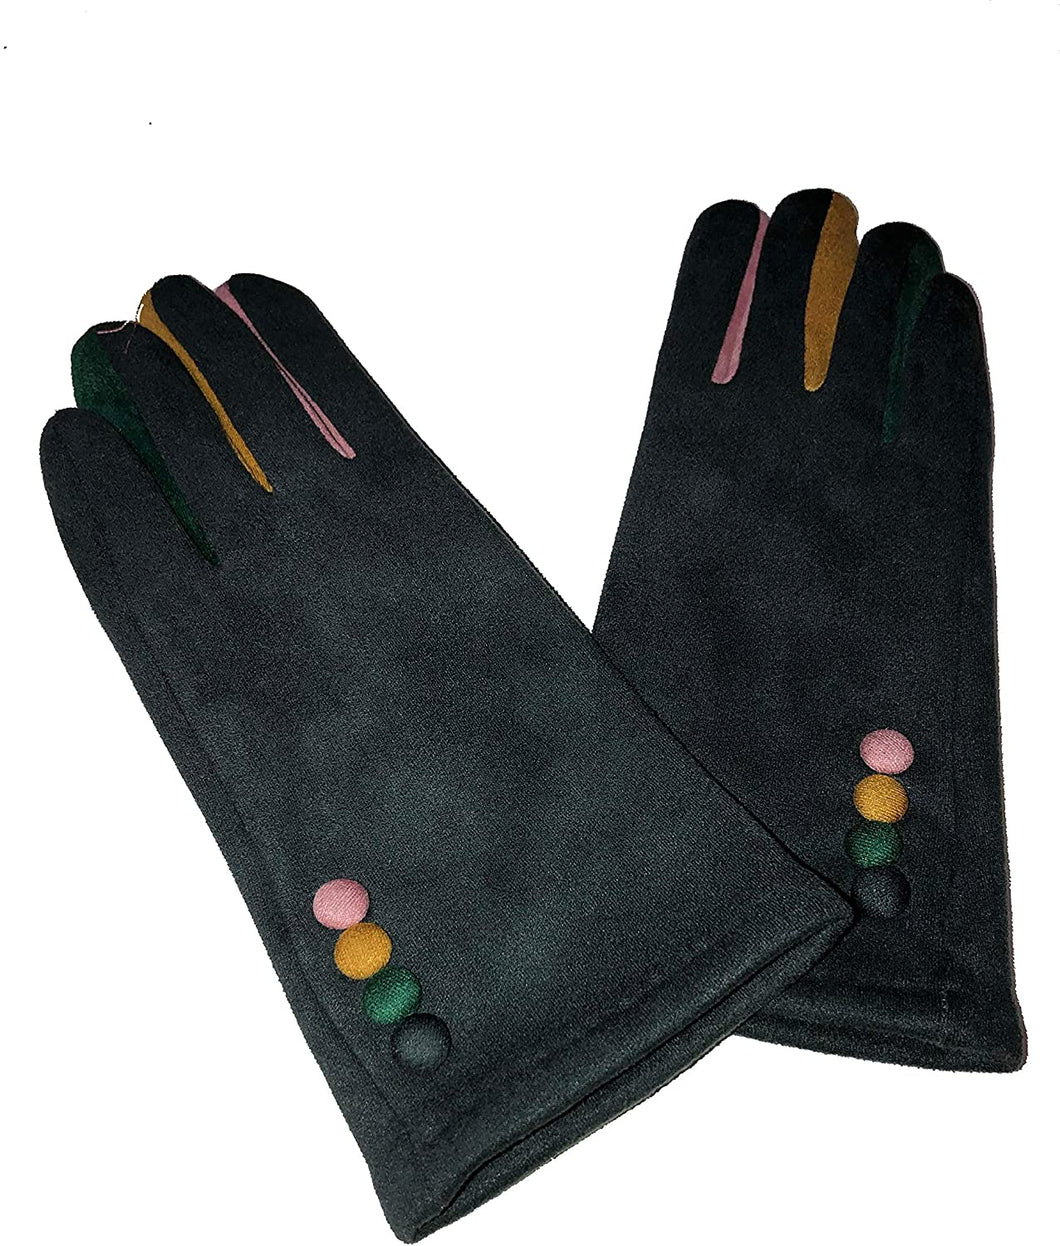 G1925 Plain grey ladies Gloves with a splash of colour between the fingers